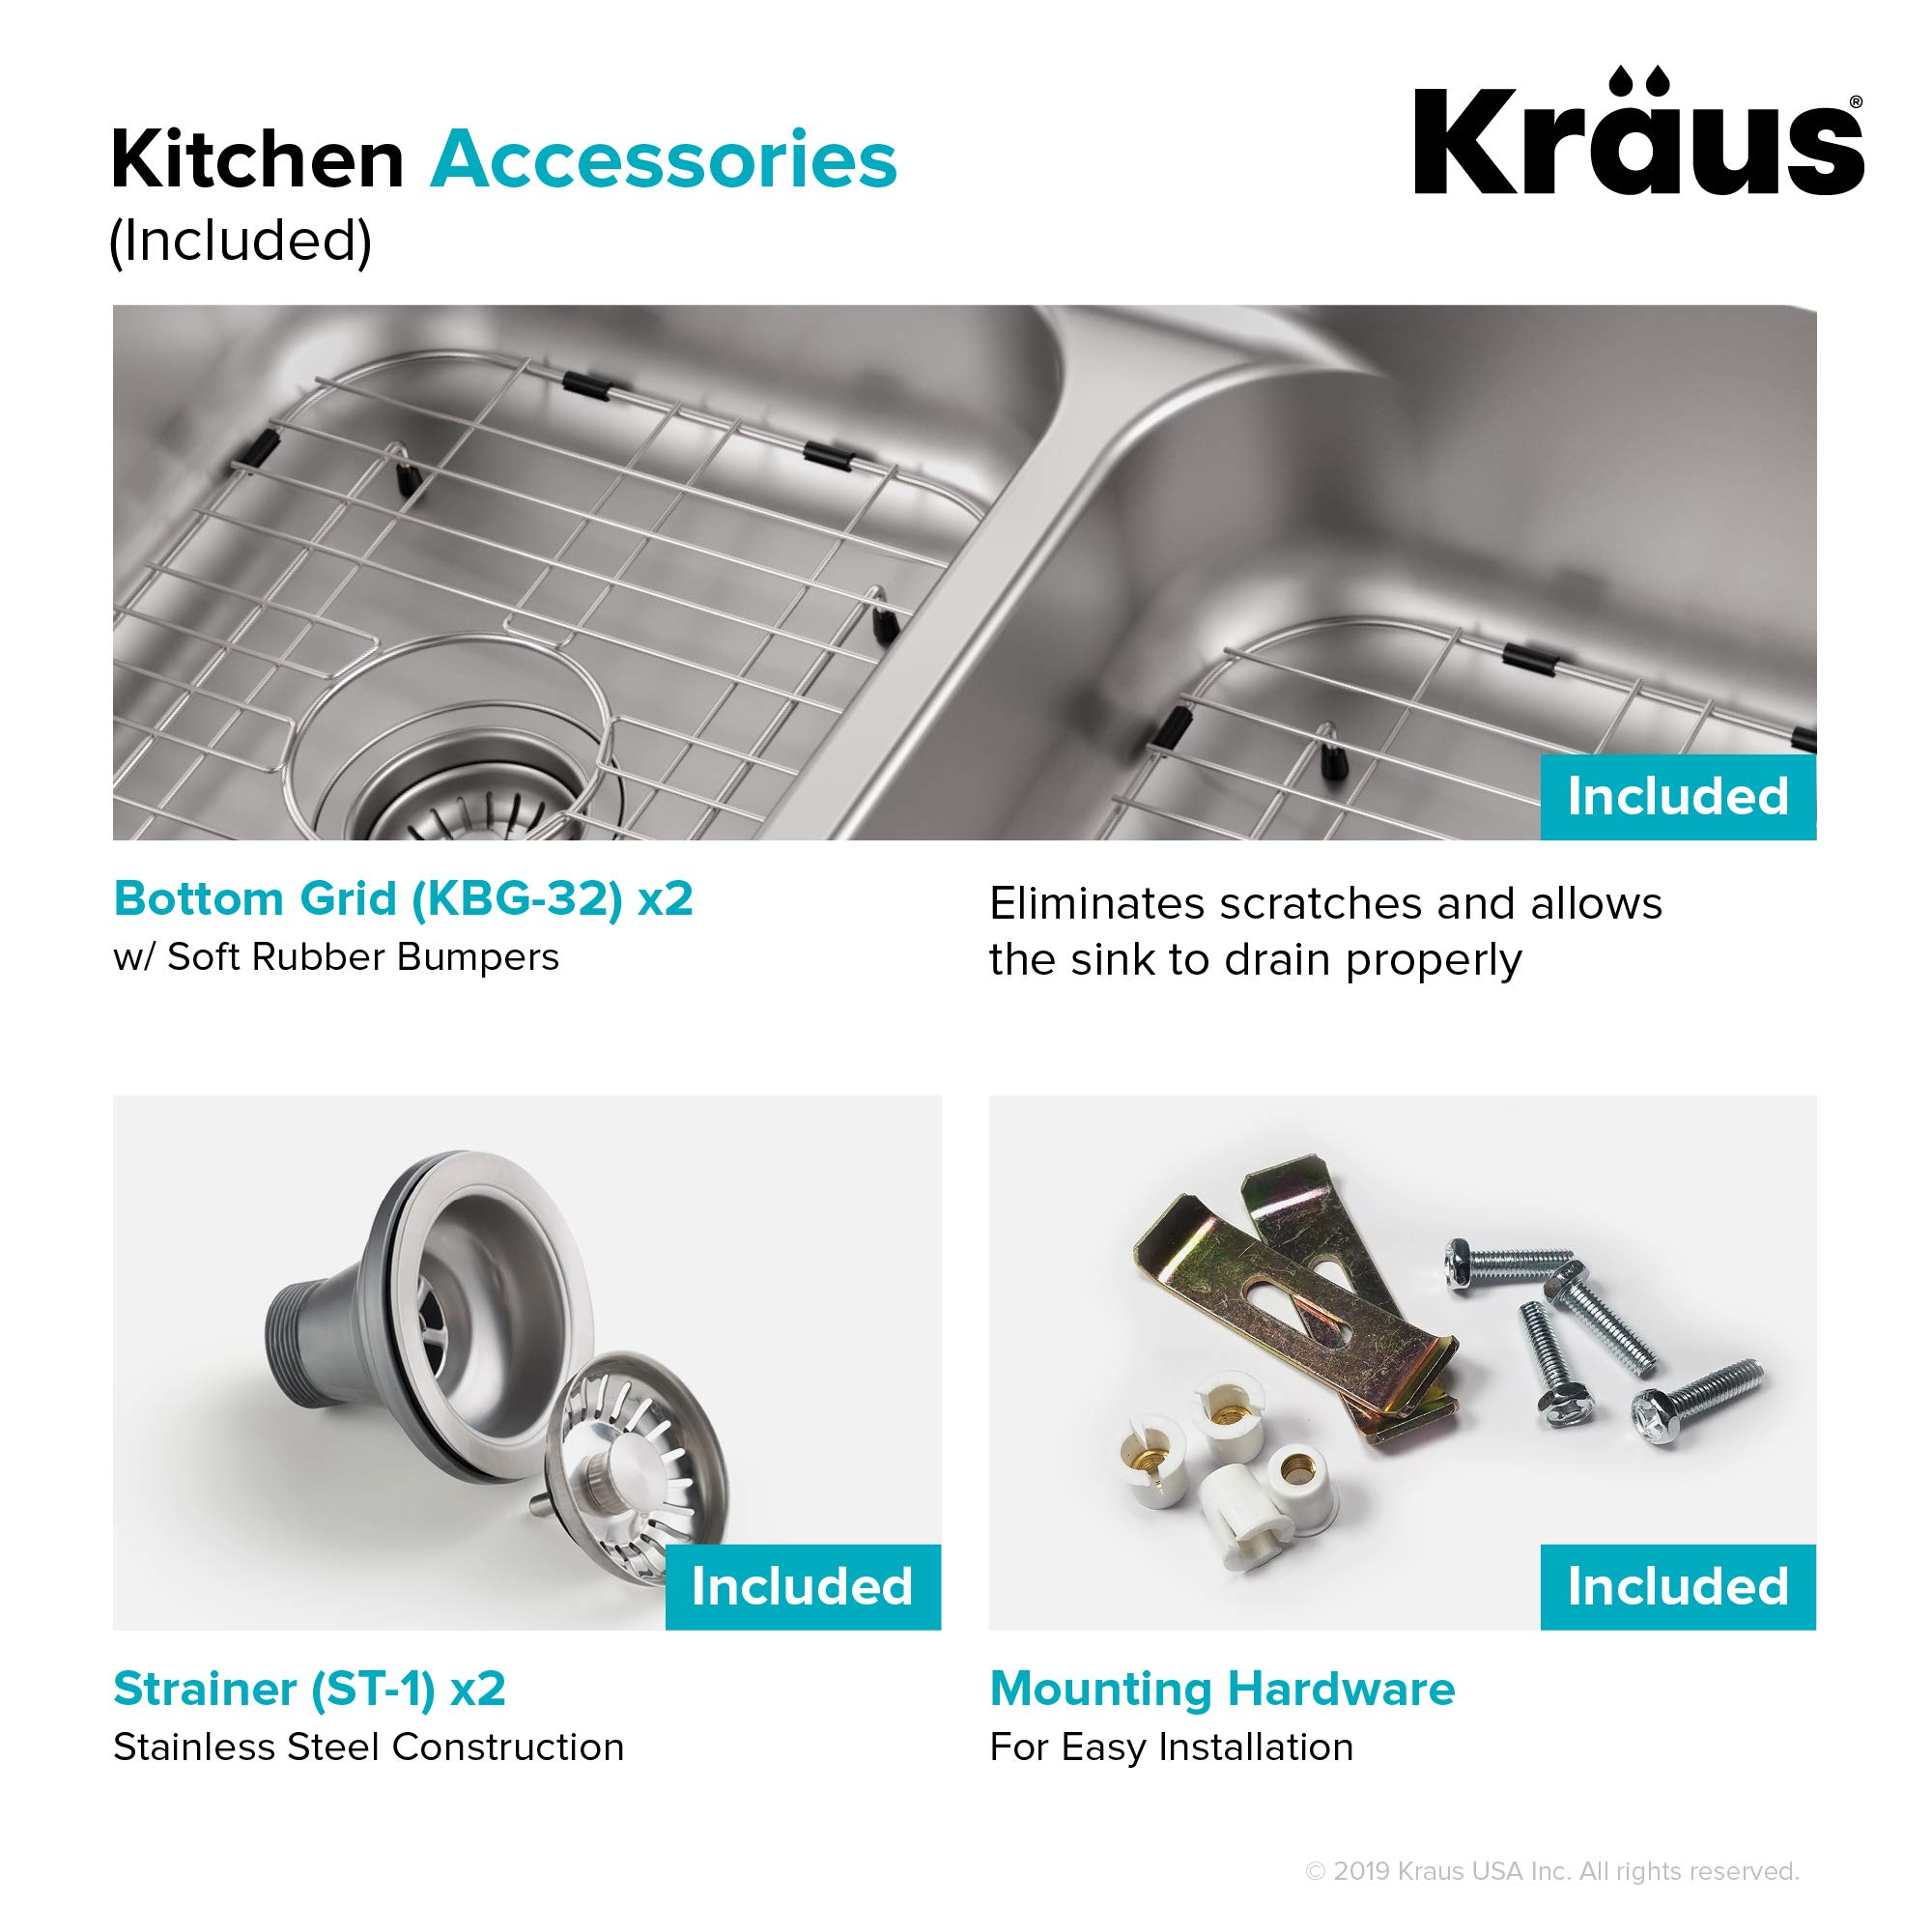 KRAUS KCA-1200 Ellis Kitchen Combo Set with 33-inch 16 Gauge Undermount Kitchen Sink and Bolden 18-inch Pull-Down Commercial Style Kitchen Faucet, Stainless Steel Finish by Kraus (Image #10)